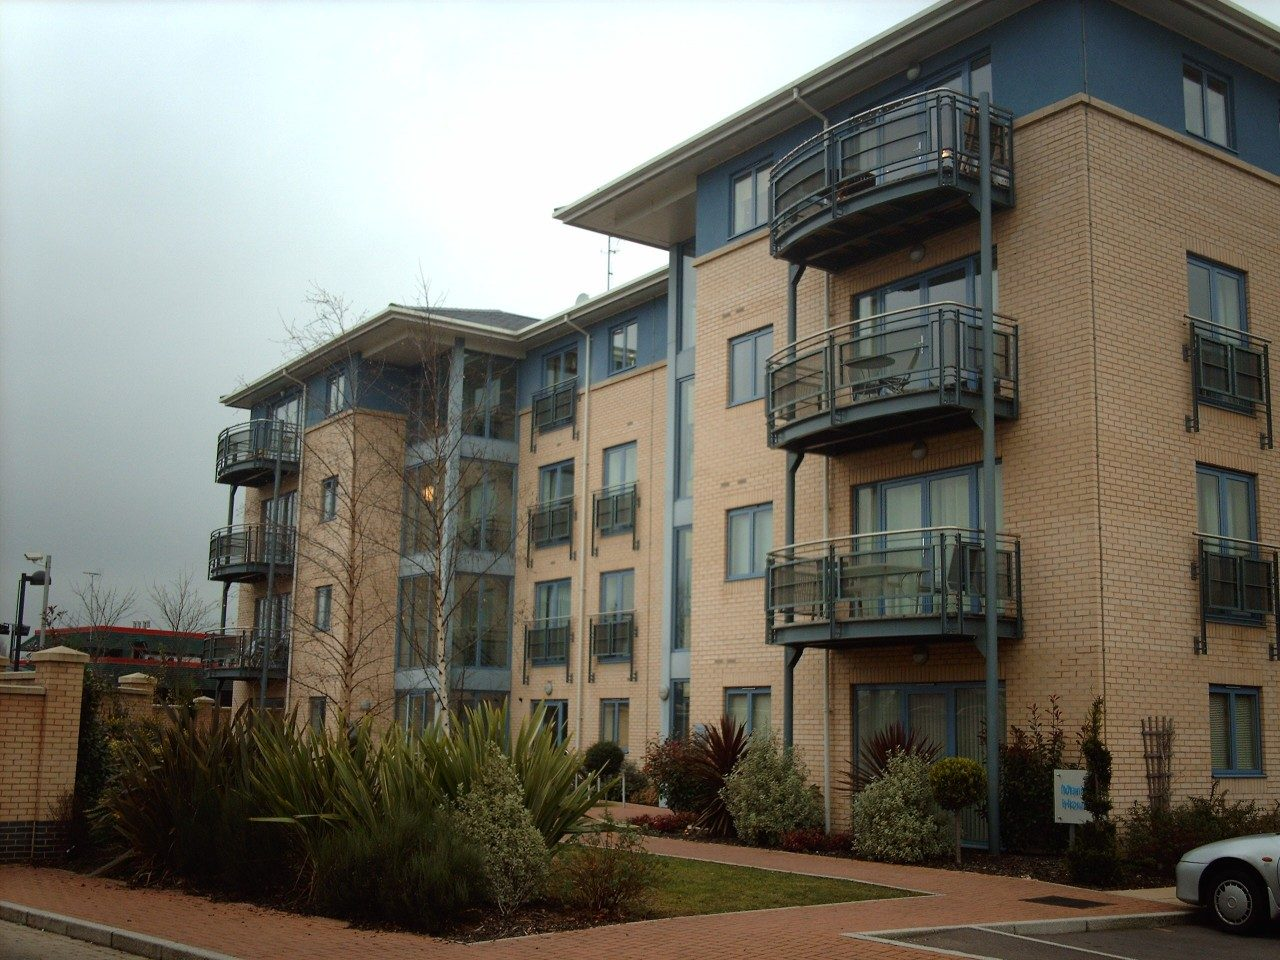 Two Double Bedroom Apartment To Rent In Nottingham The